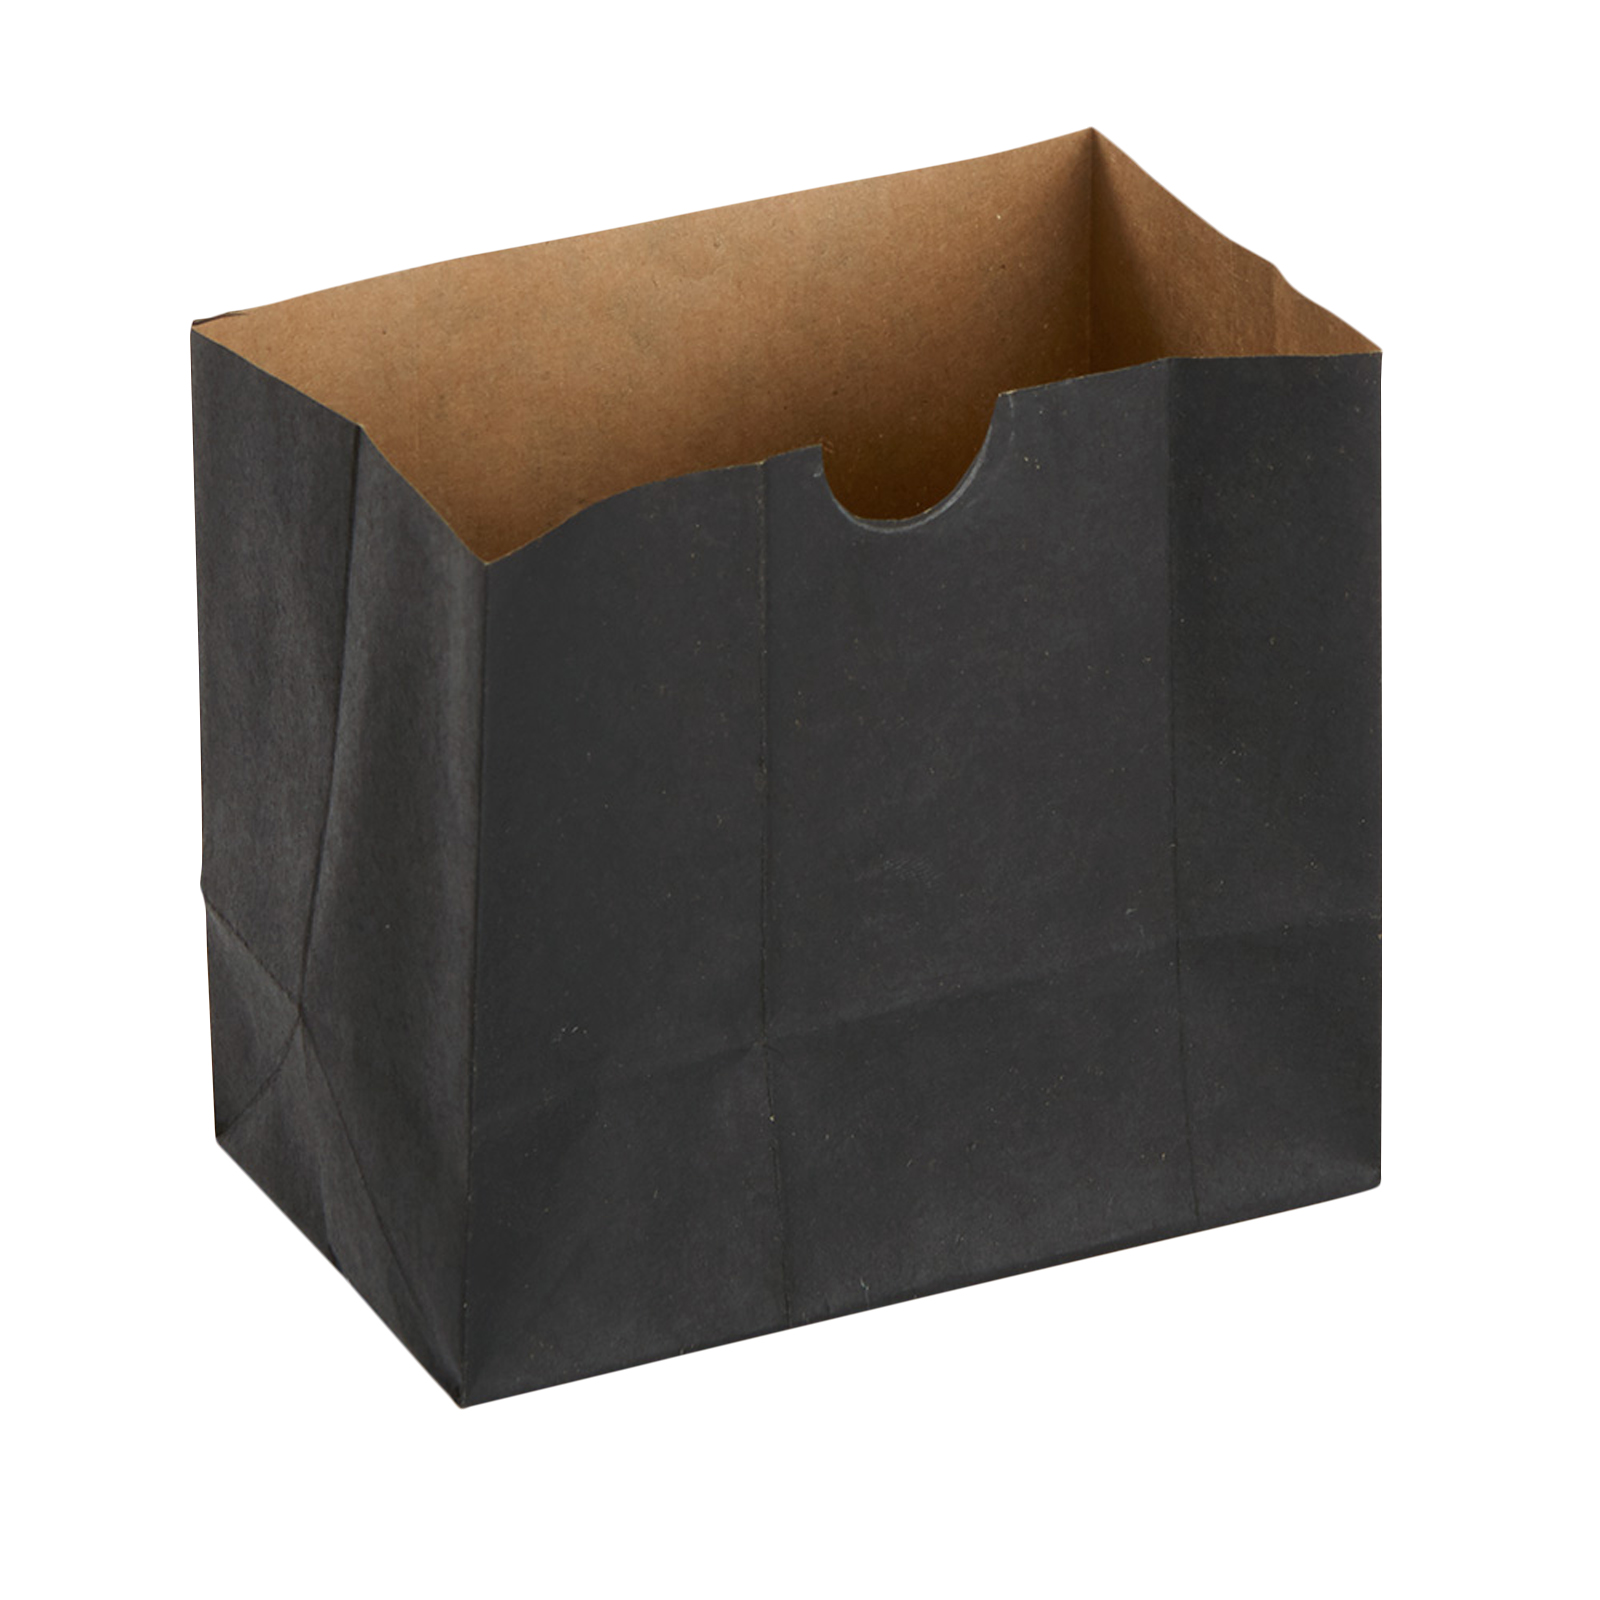 American Metalcraft SBB4 disposable take out container